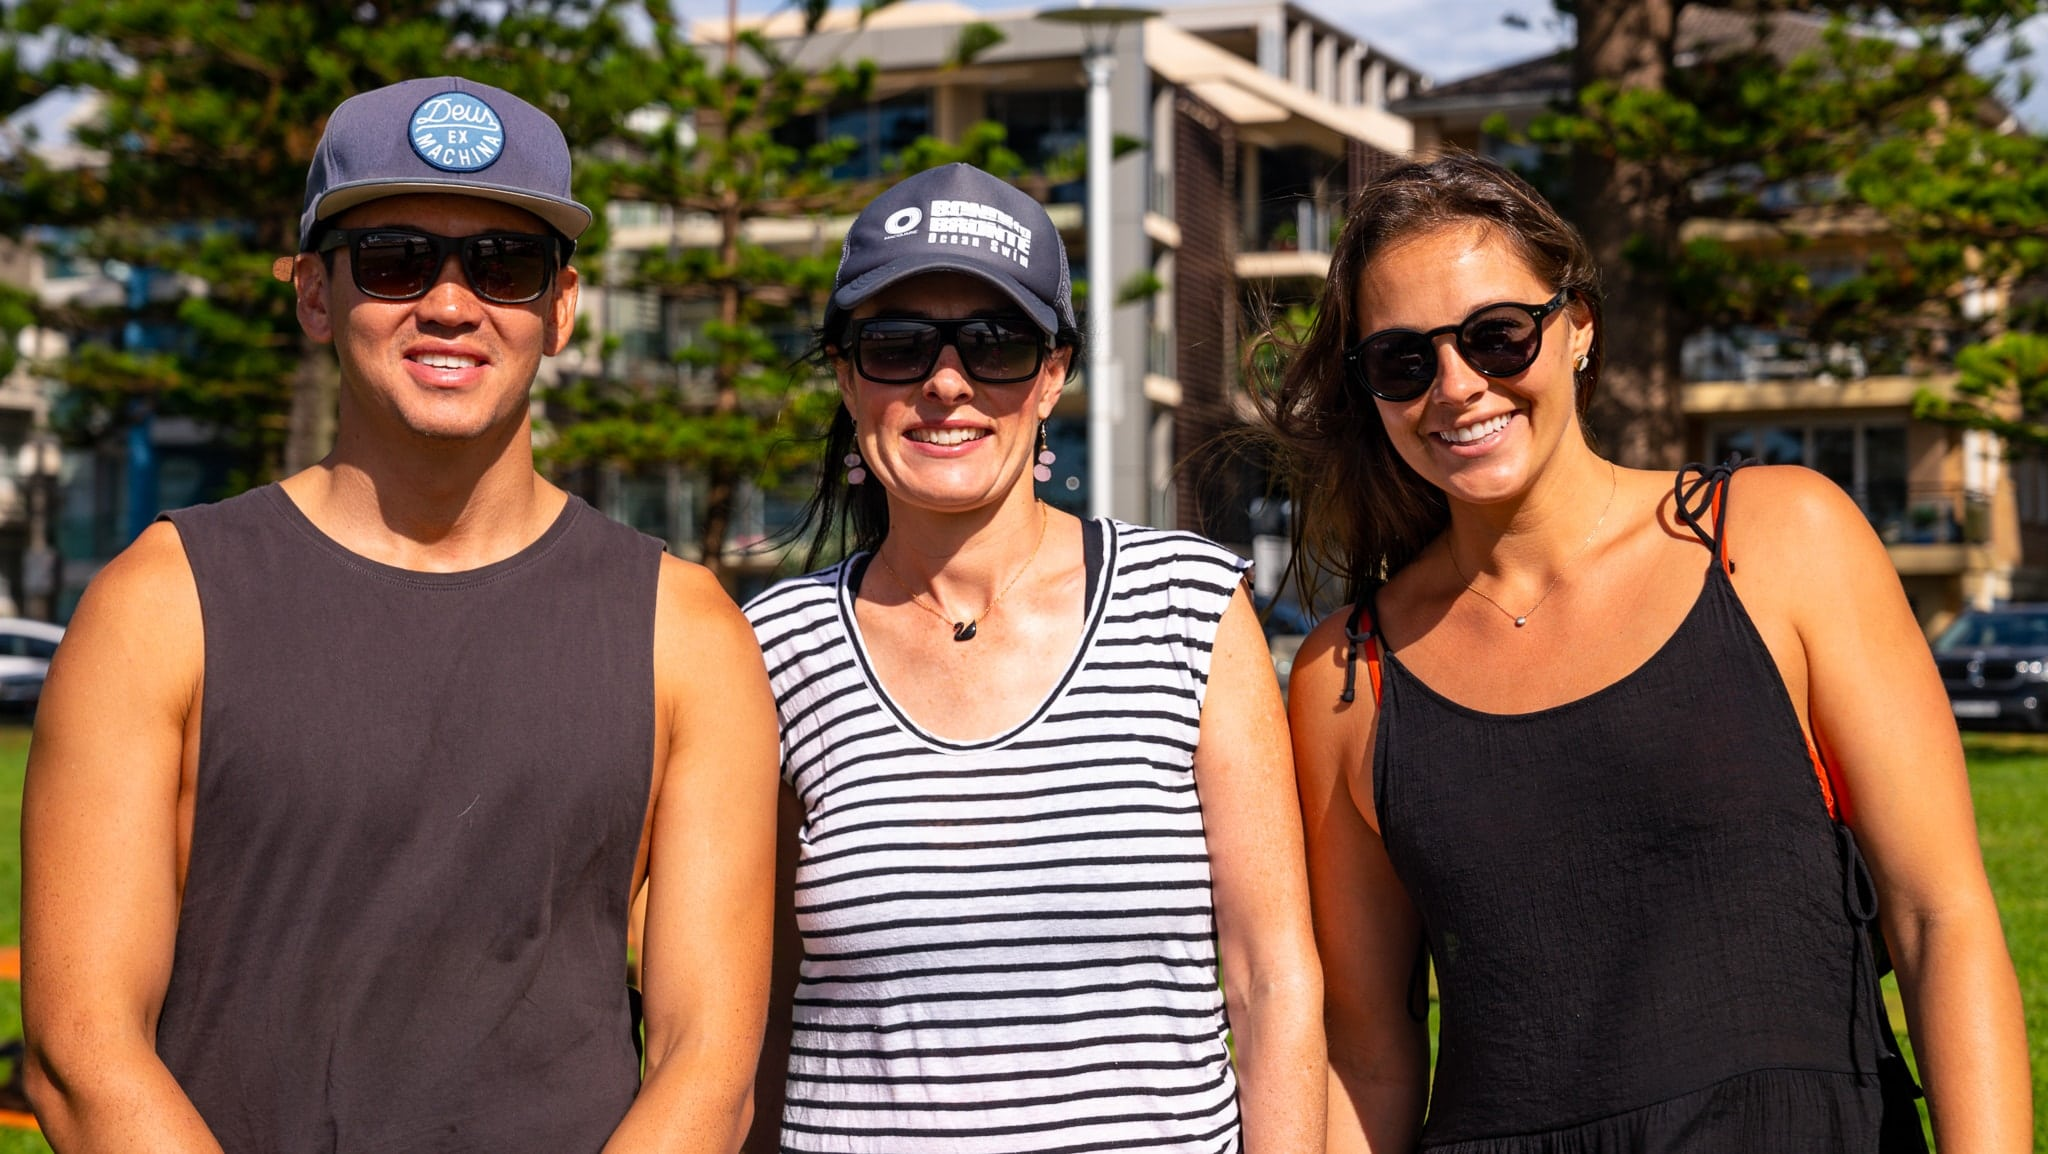 Publift staff at The Big Kahuna surf charity event with UnLtd